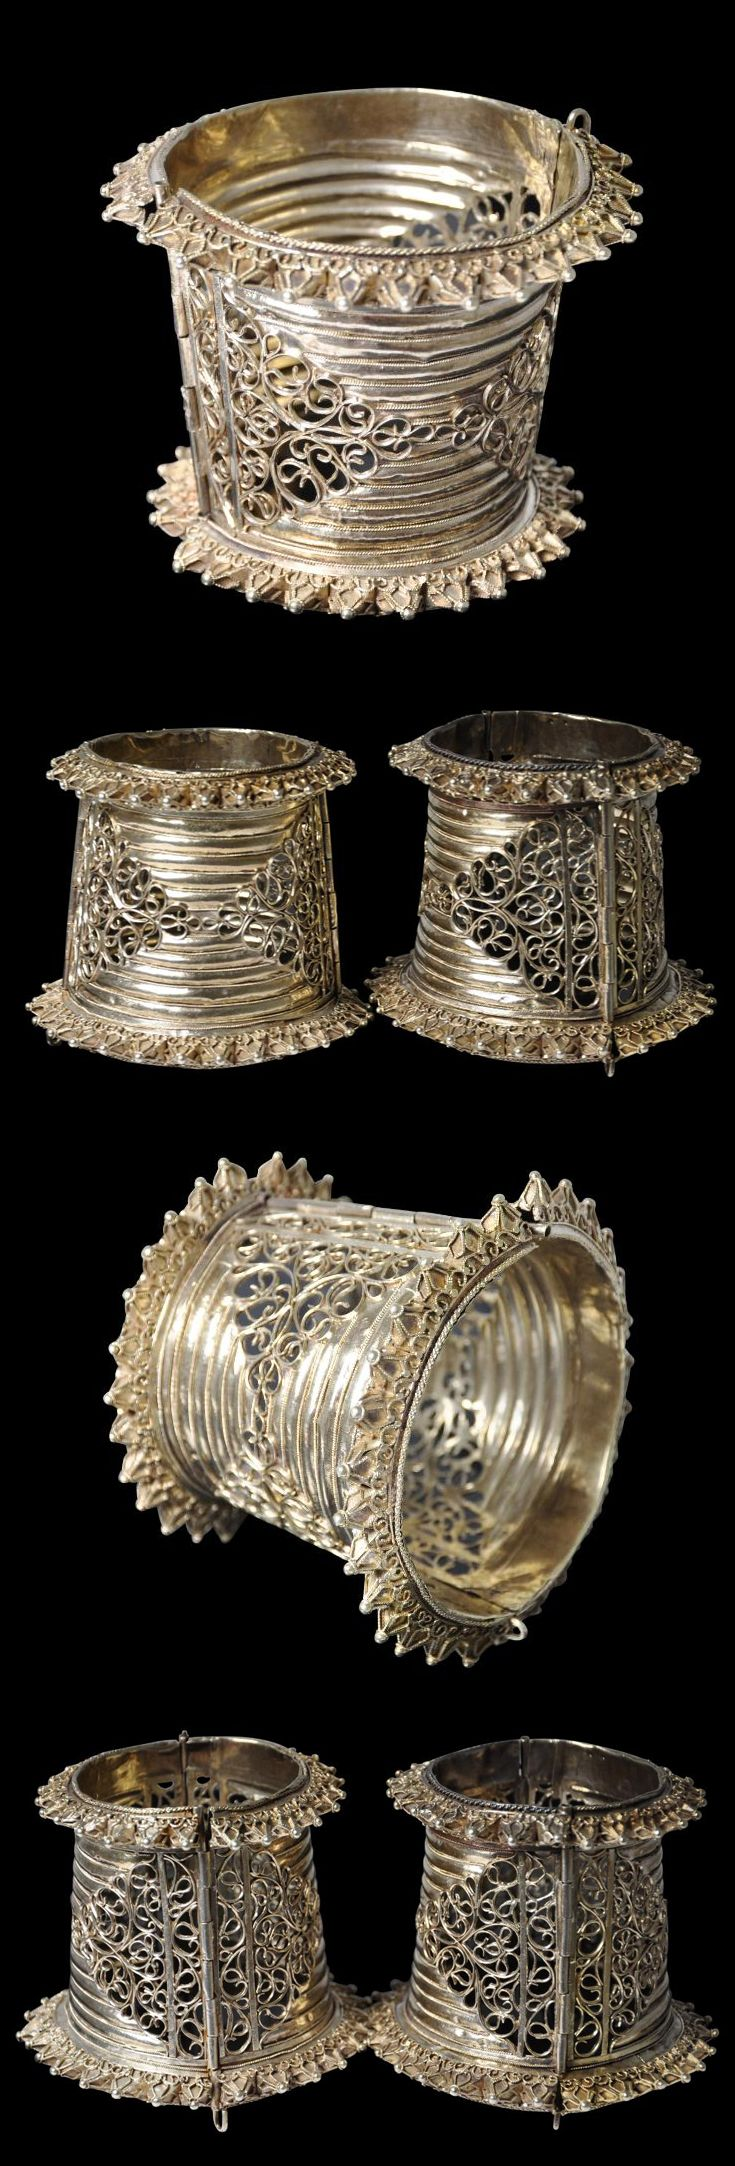 Indonesia | Rare Pair of Gold Cuff Bracelets (Tigero Tedong) | Bugis People…